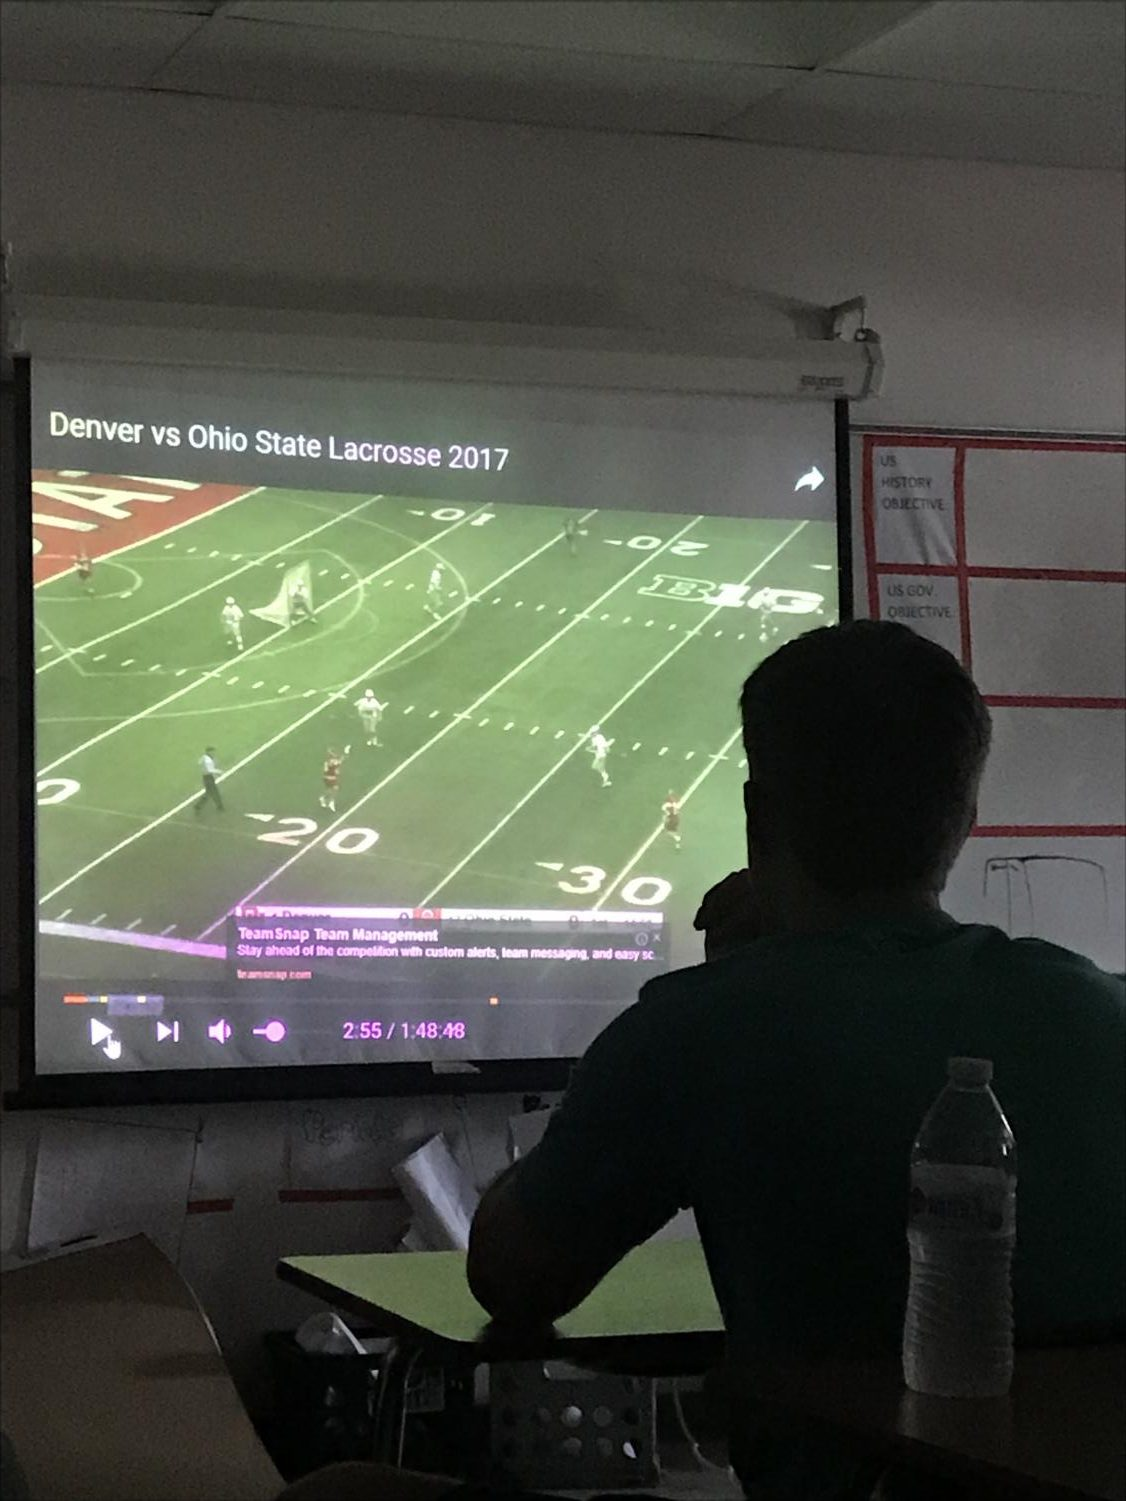 As part of their training, the boys LAX team watches videos of college lacrosse teams.